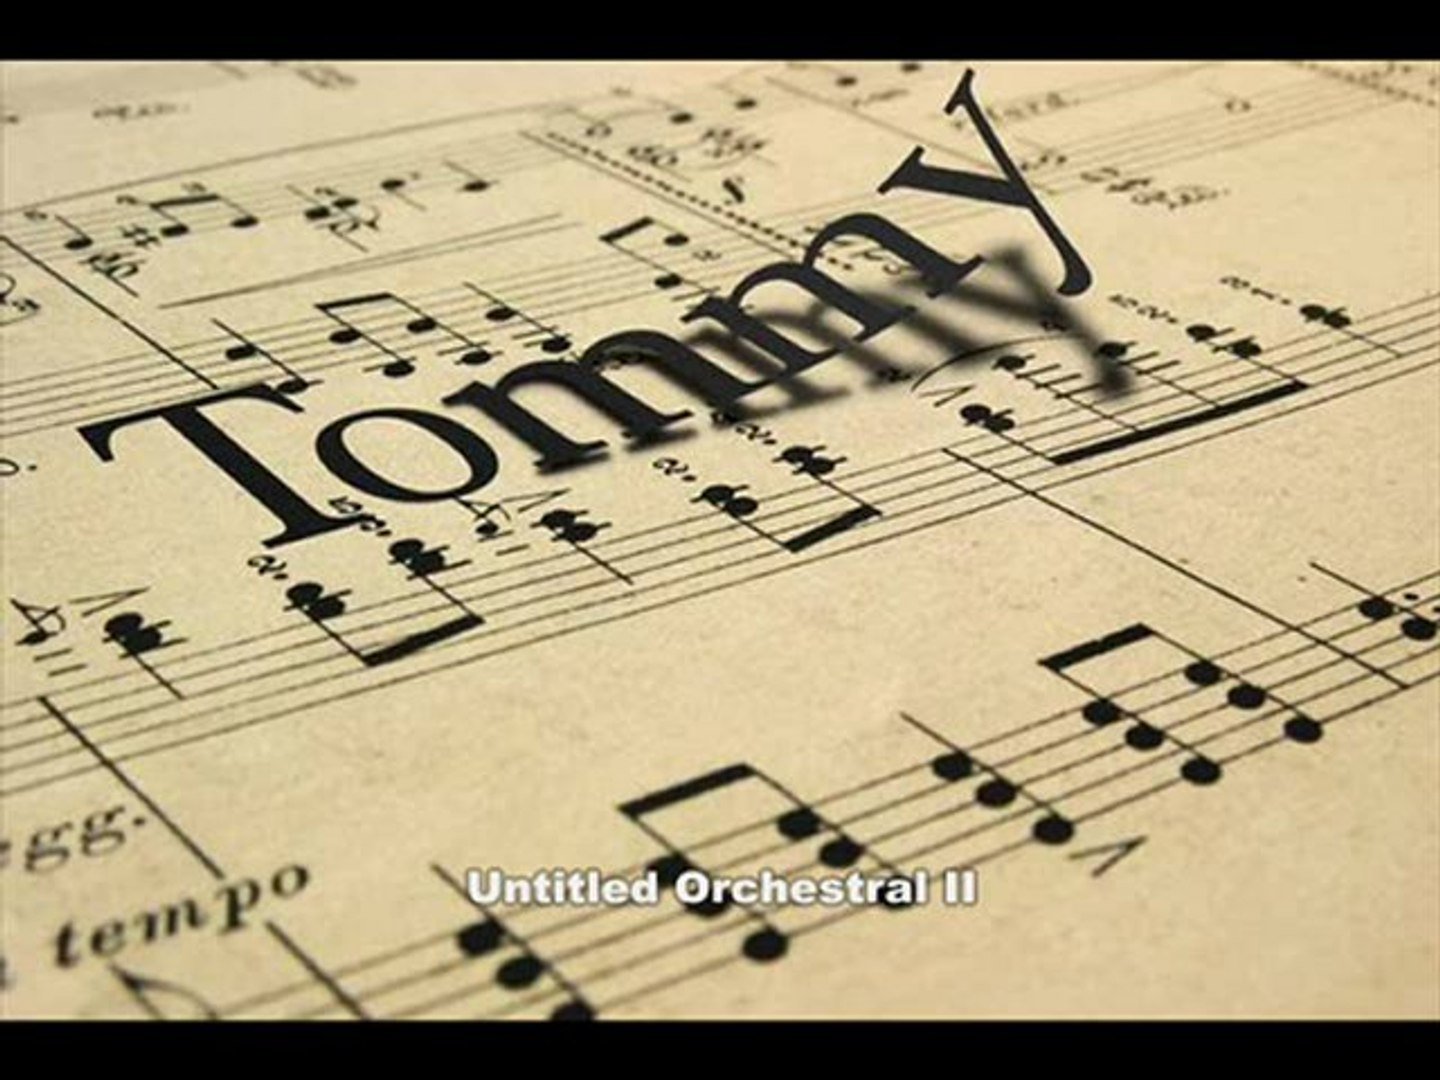 Orchestral music composed by 18-year old kid